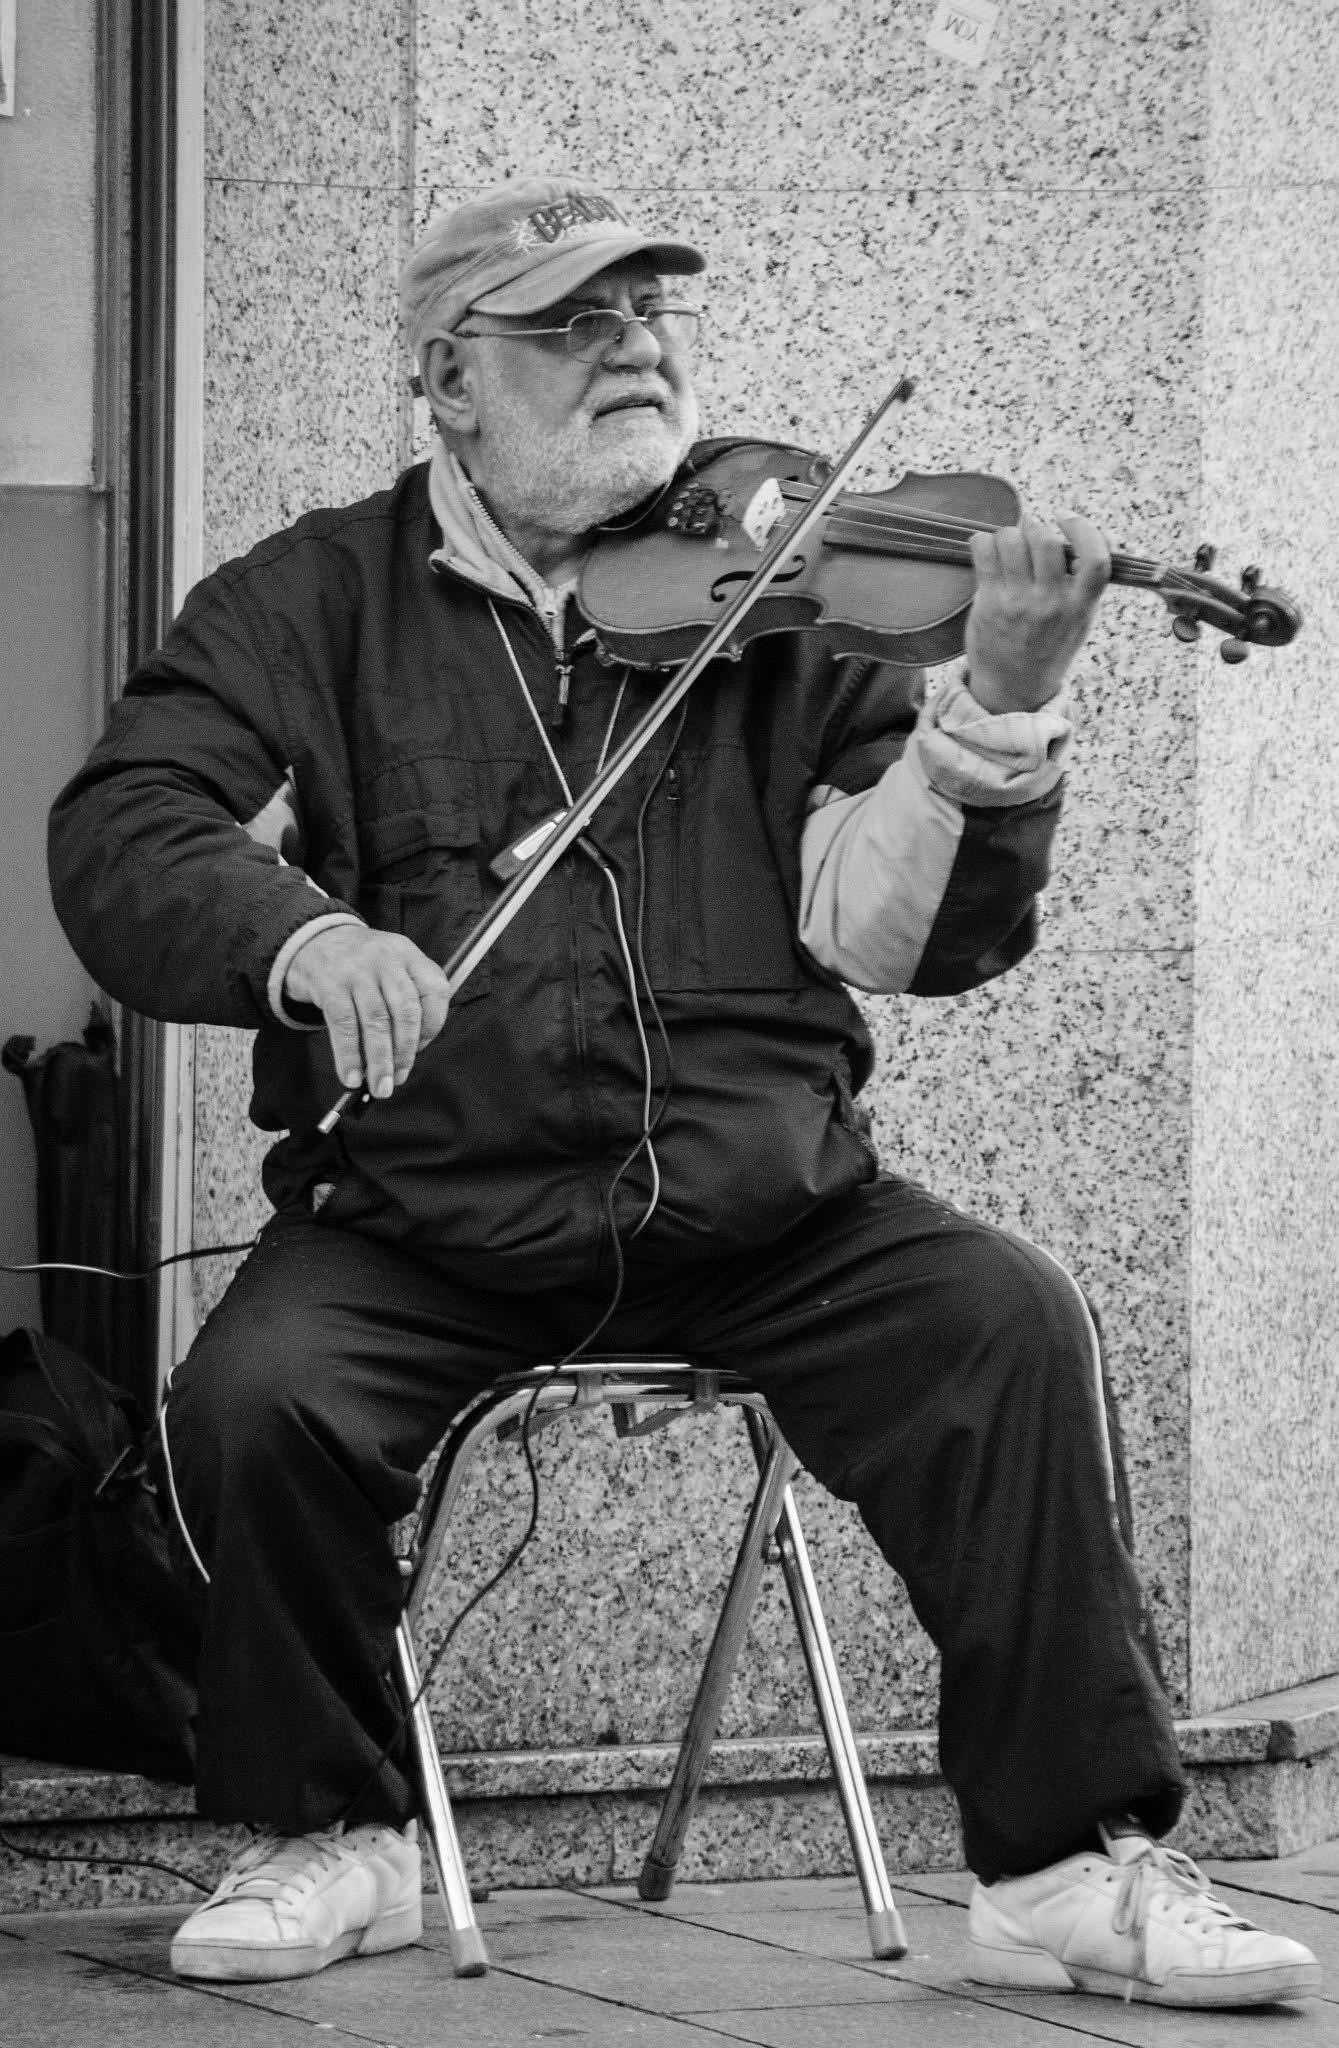 Violin player by Lee Russell Wilkes